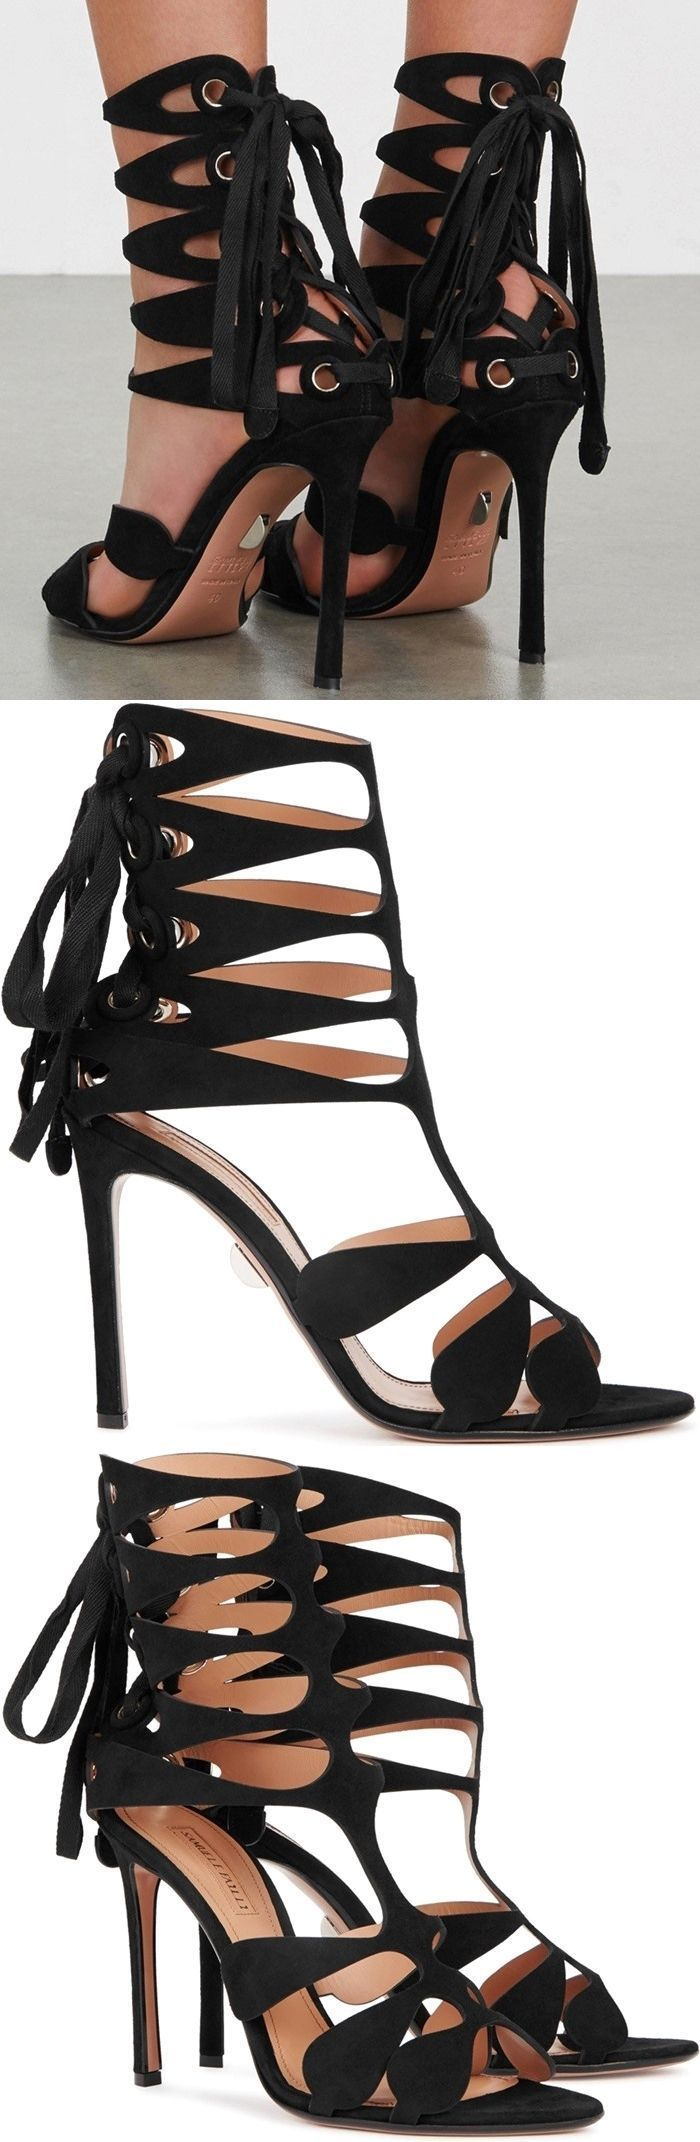 Crafted of black suede, these sandals are styled with cutouts, a lace-up back, and a slim stiletto heel. #stilettoheels2017 #stilettoheelsdress